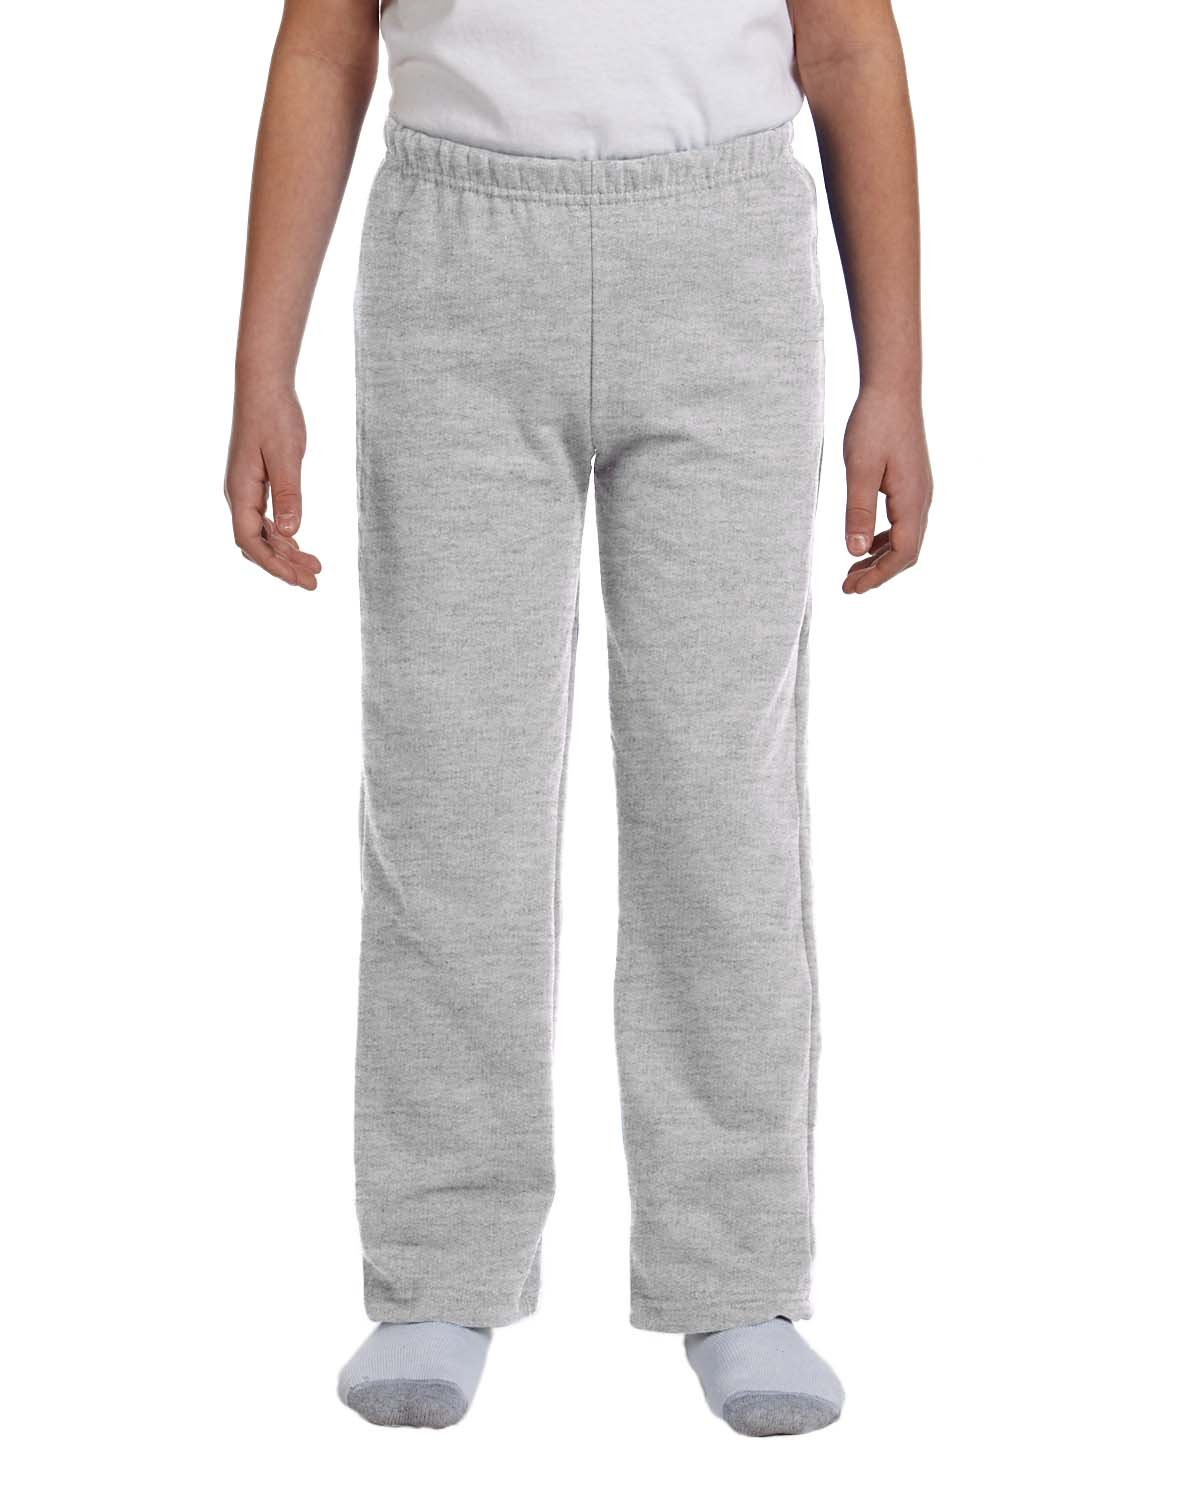 Gildan Boys 7.75 Oz. Heavy Blend 50/50 Sweatpants (G184B) -Sport Grey -L-12PK